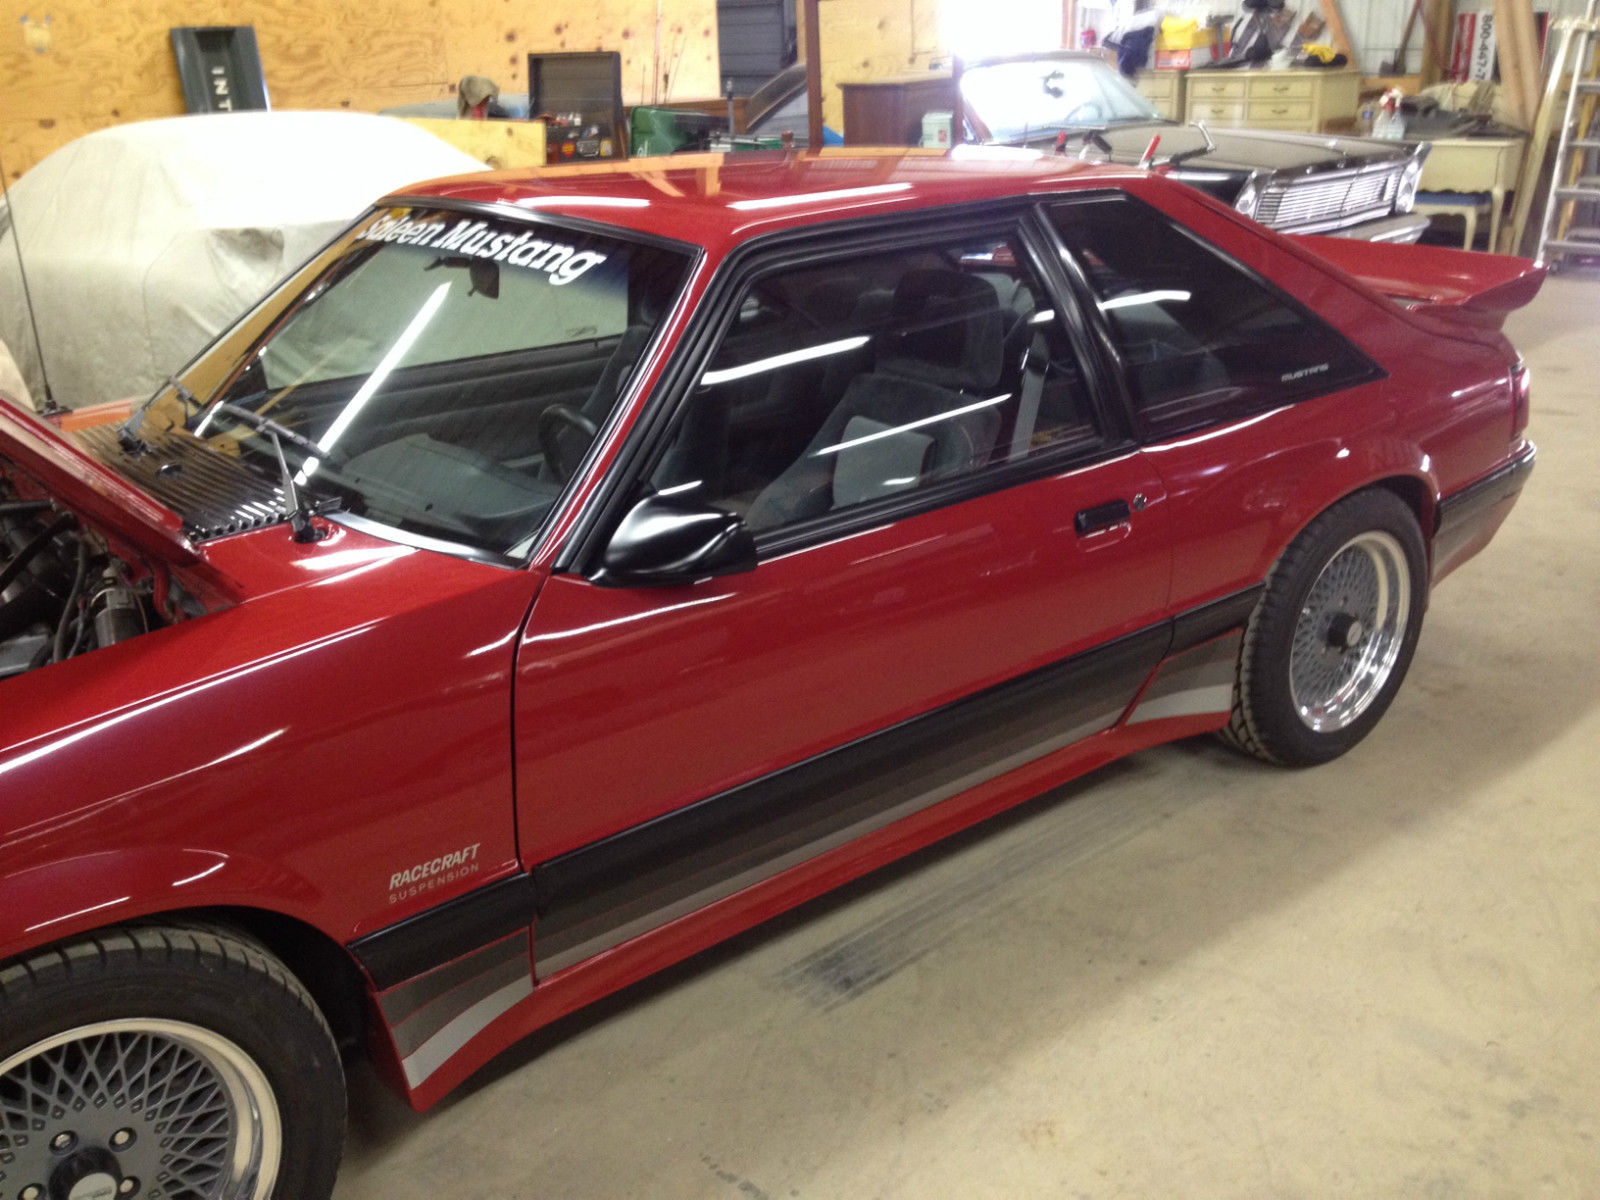 Ford Dealership Peoria Il >> 1987 HATCHBACK (87-0162) OFFERED ON eBay   Saleen Owners ...